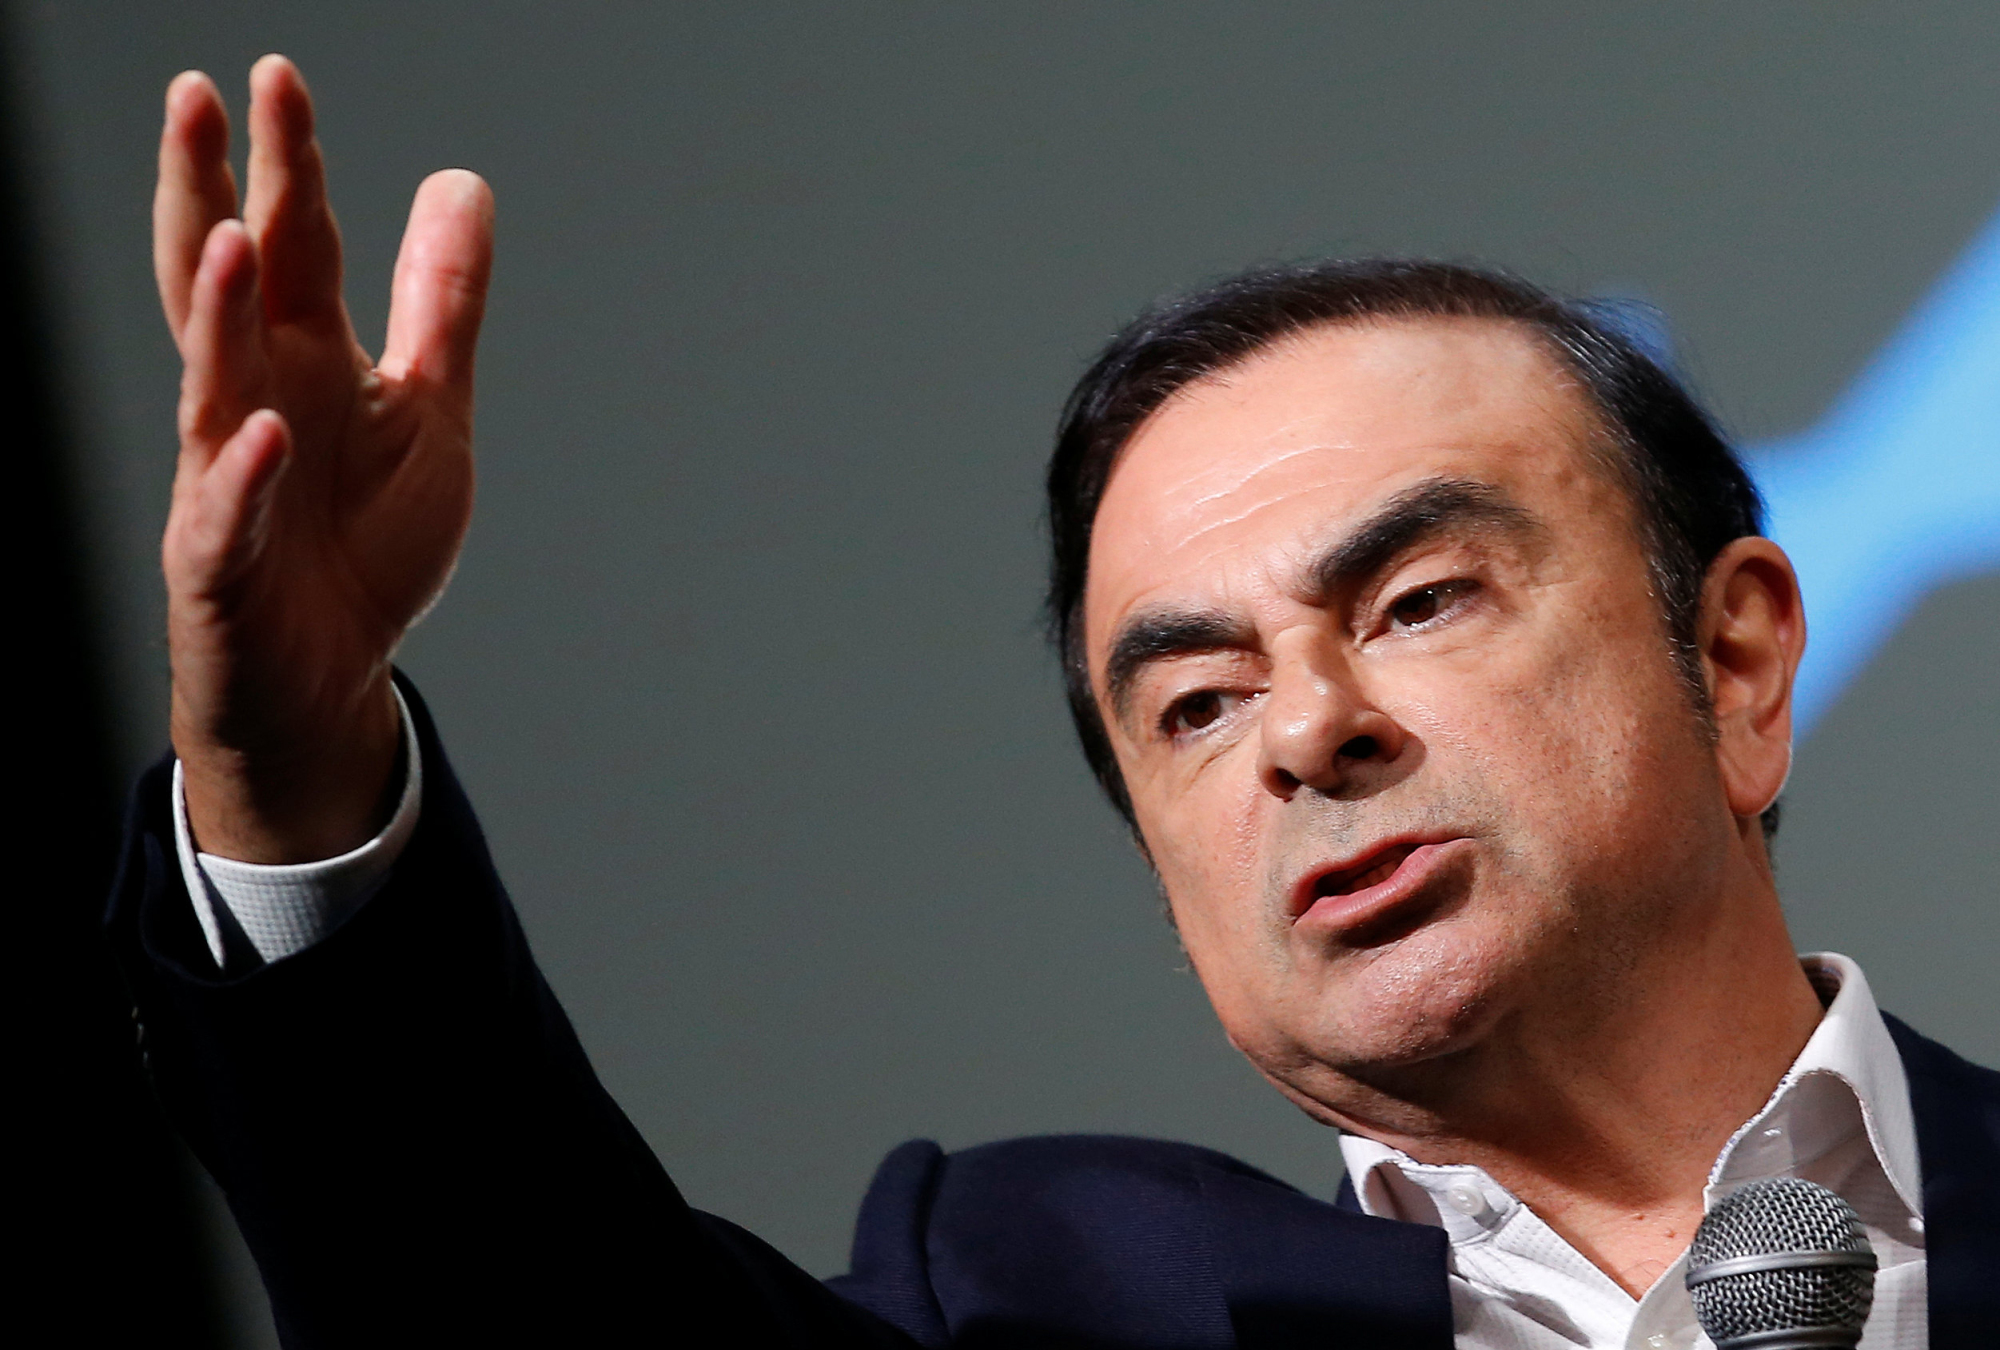 Numerous management experts say the Carlos Ghosn case is having a chilling effect on Japanese firms' recruiting efforts. | REUTERS